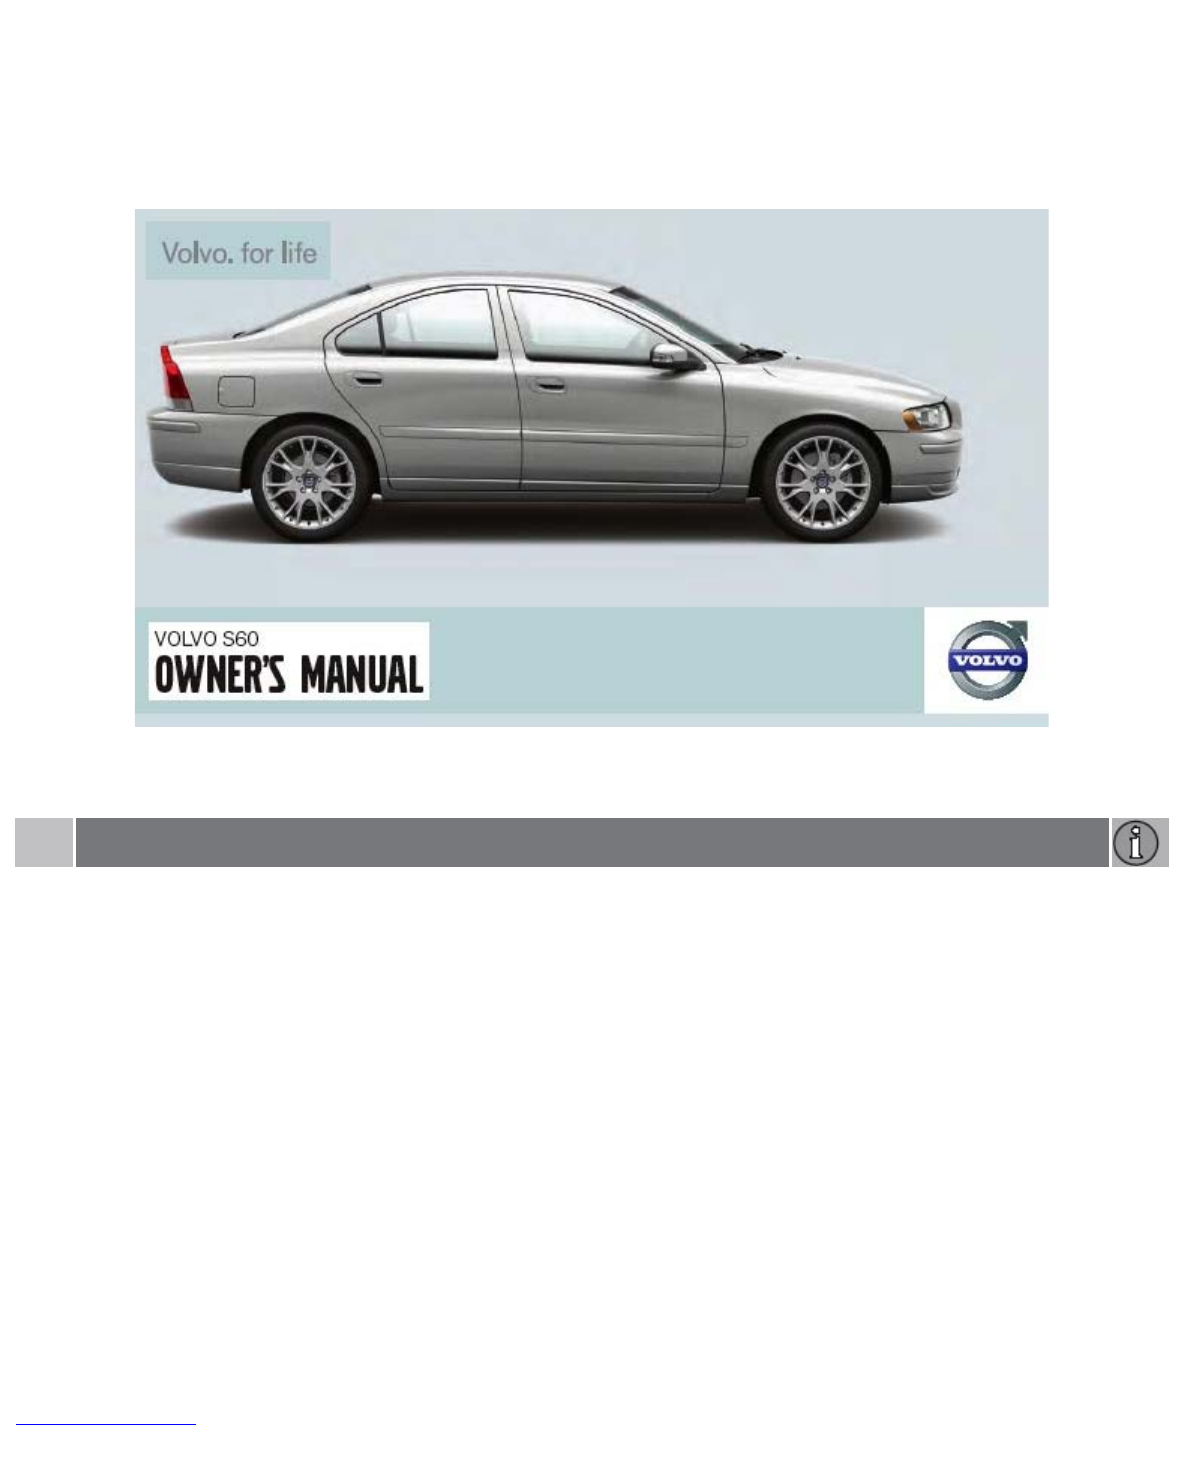 2008 volvo s60 owners manual pdf rh manuals co 2008 volvo s60 owners manual download volvo s60 owners manual 2017